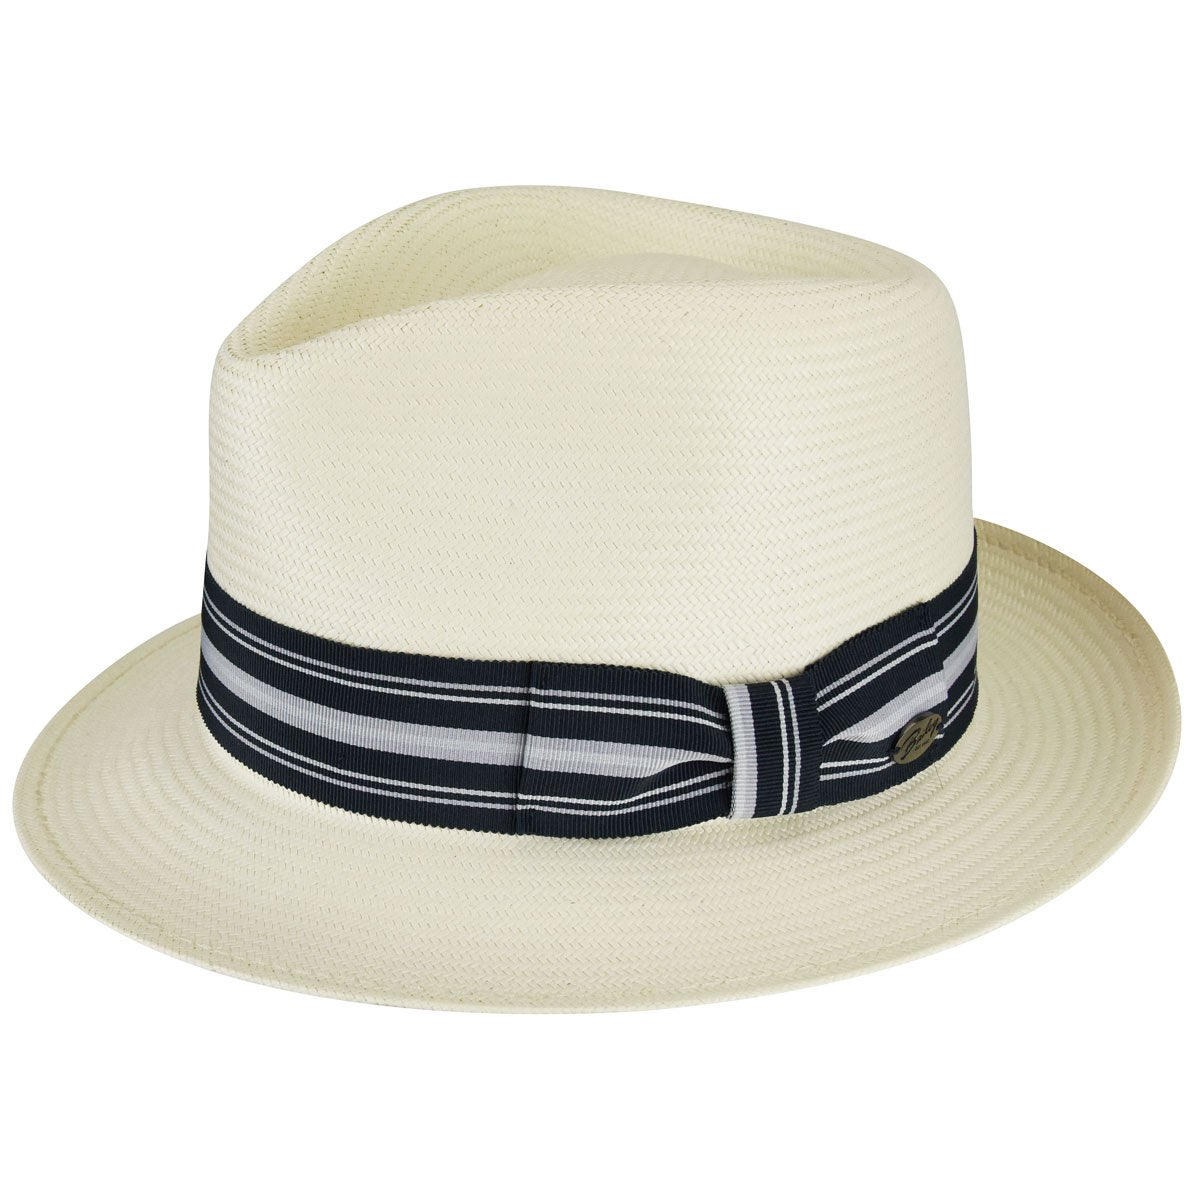 1950s Mens Hats | 50s Vintage Men's Hats Tharp LiteStraw Fedora $135.00 AT vintagedancer.com